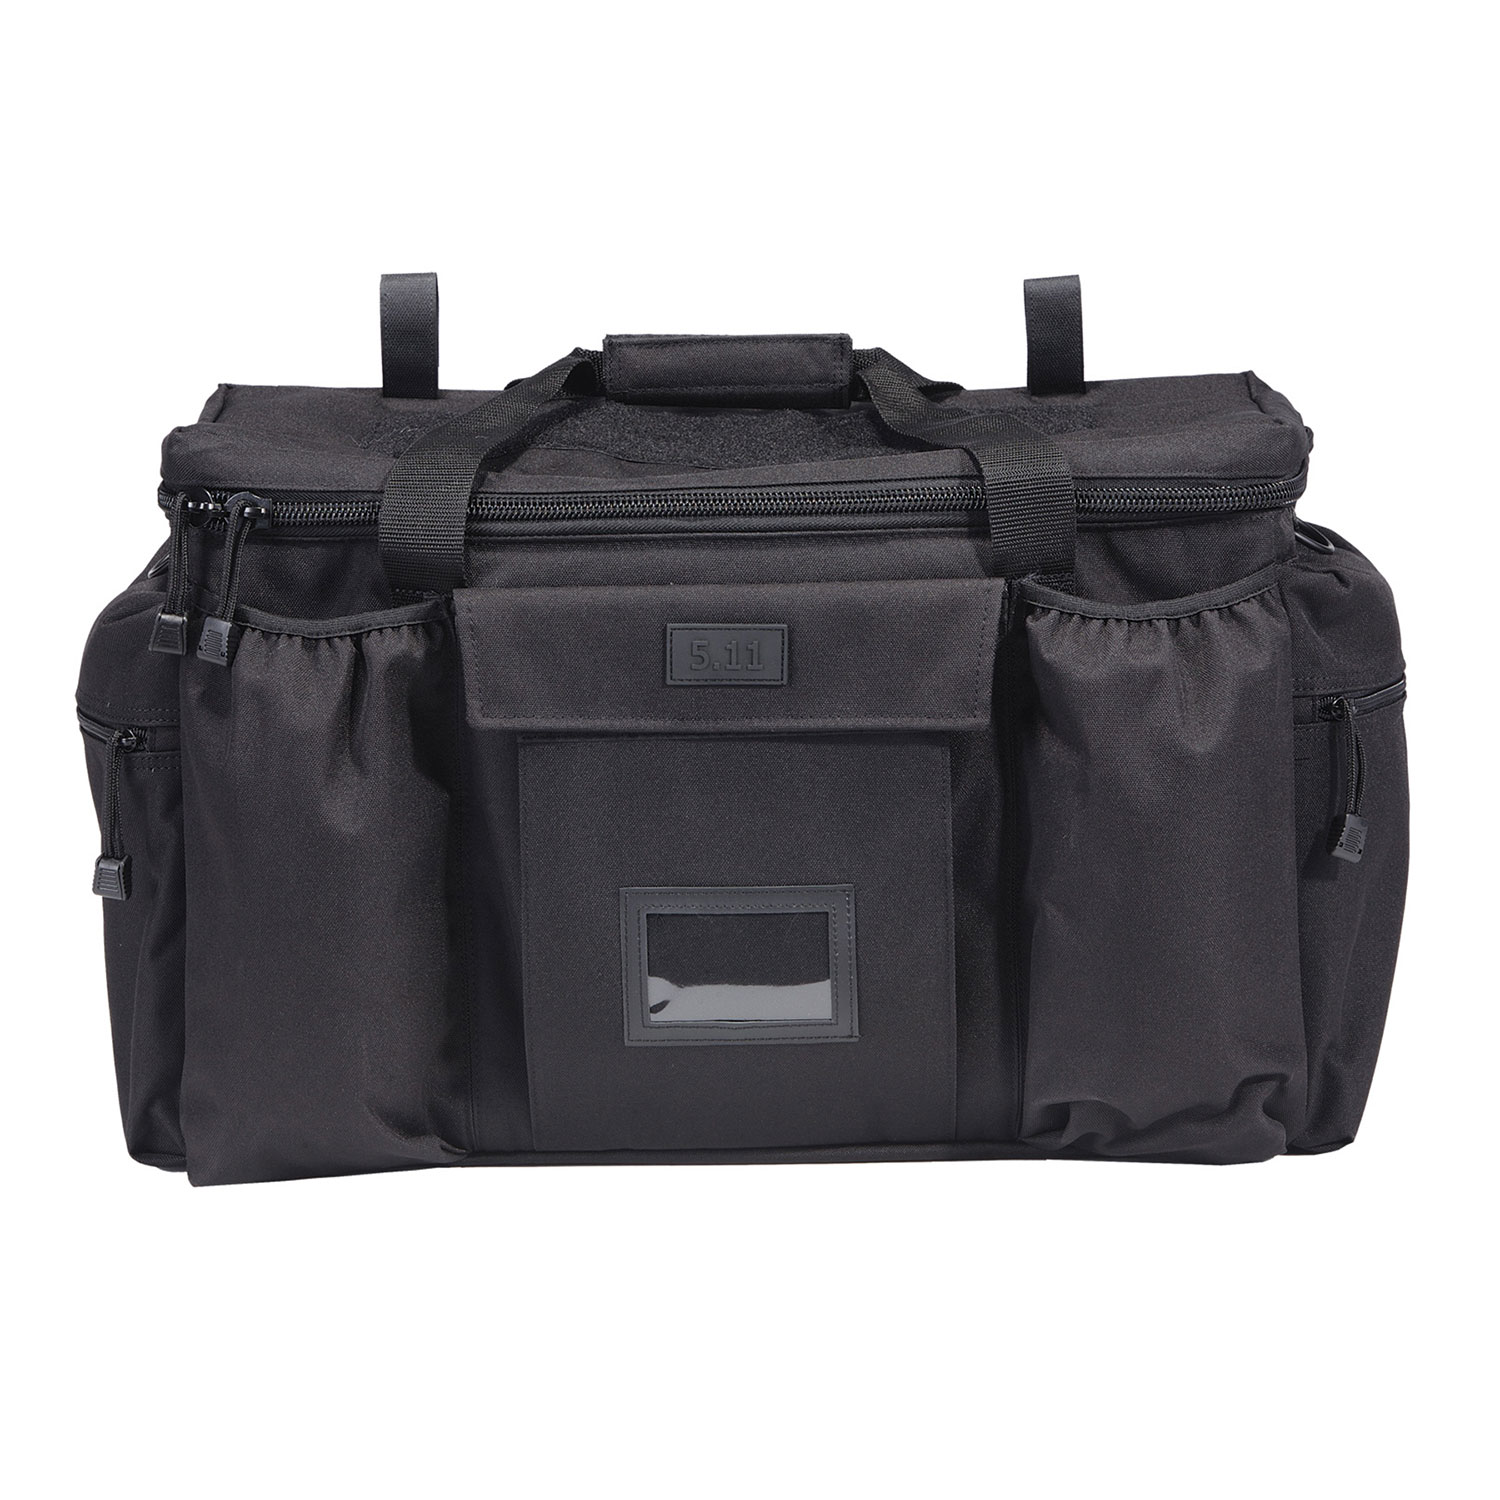 5.11 Tactical Patrol Ready Gear Bag